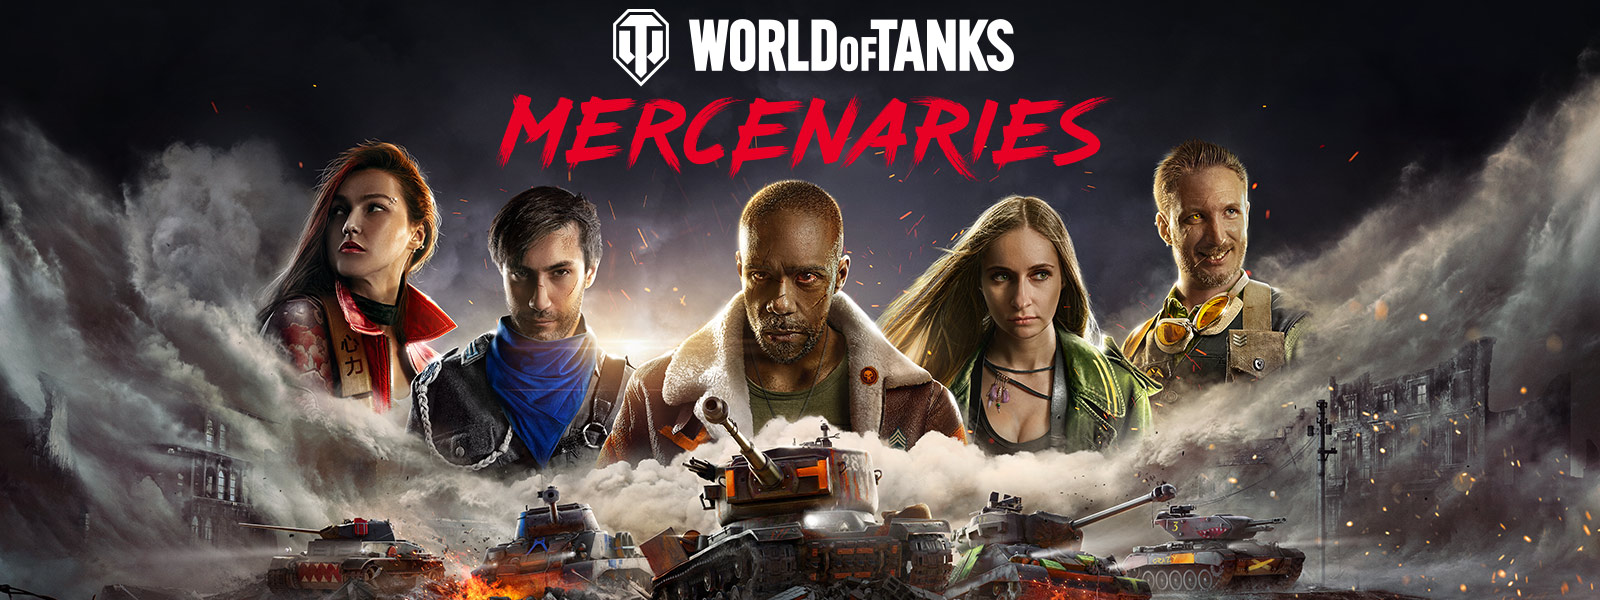 World of Tanks Mercenaries; cinco personajes y tanques